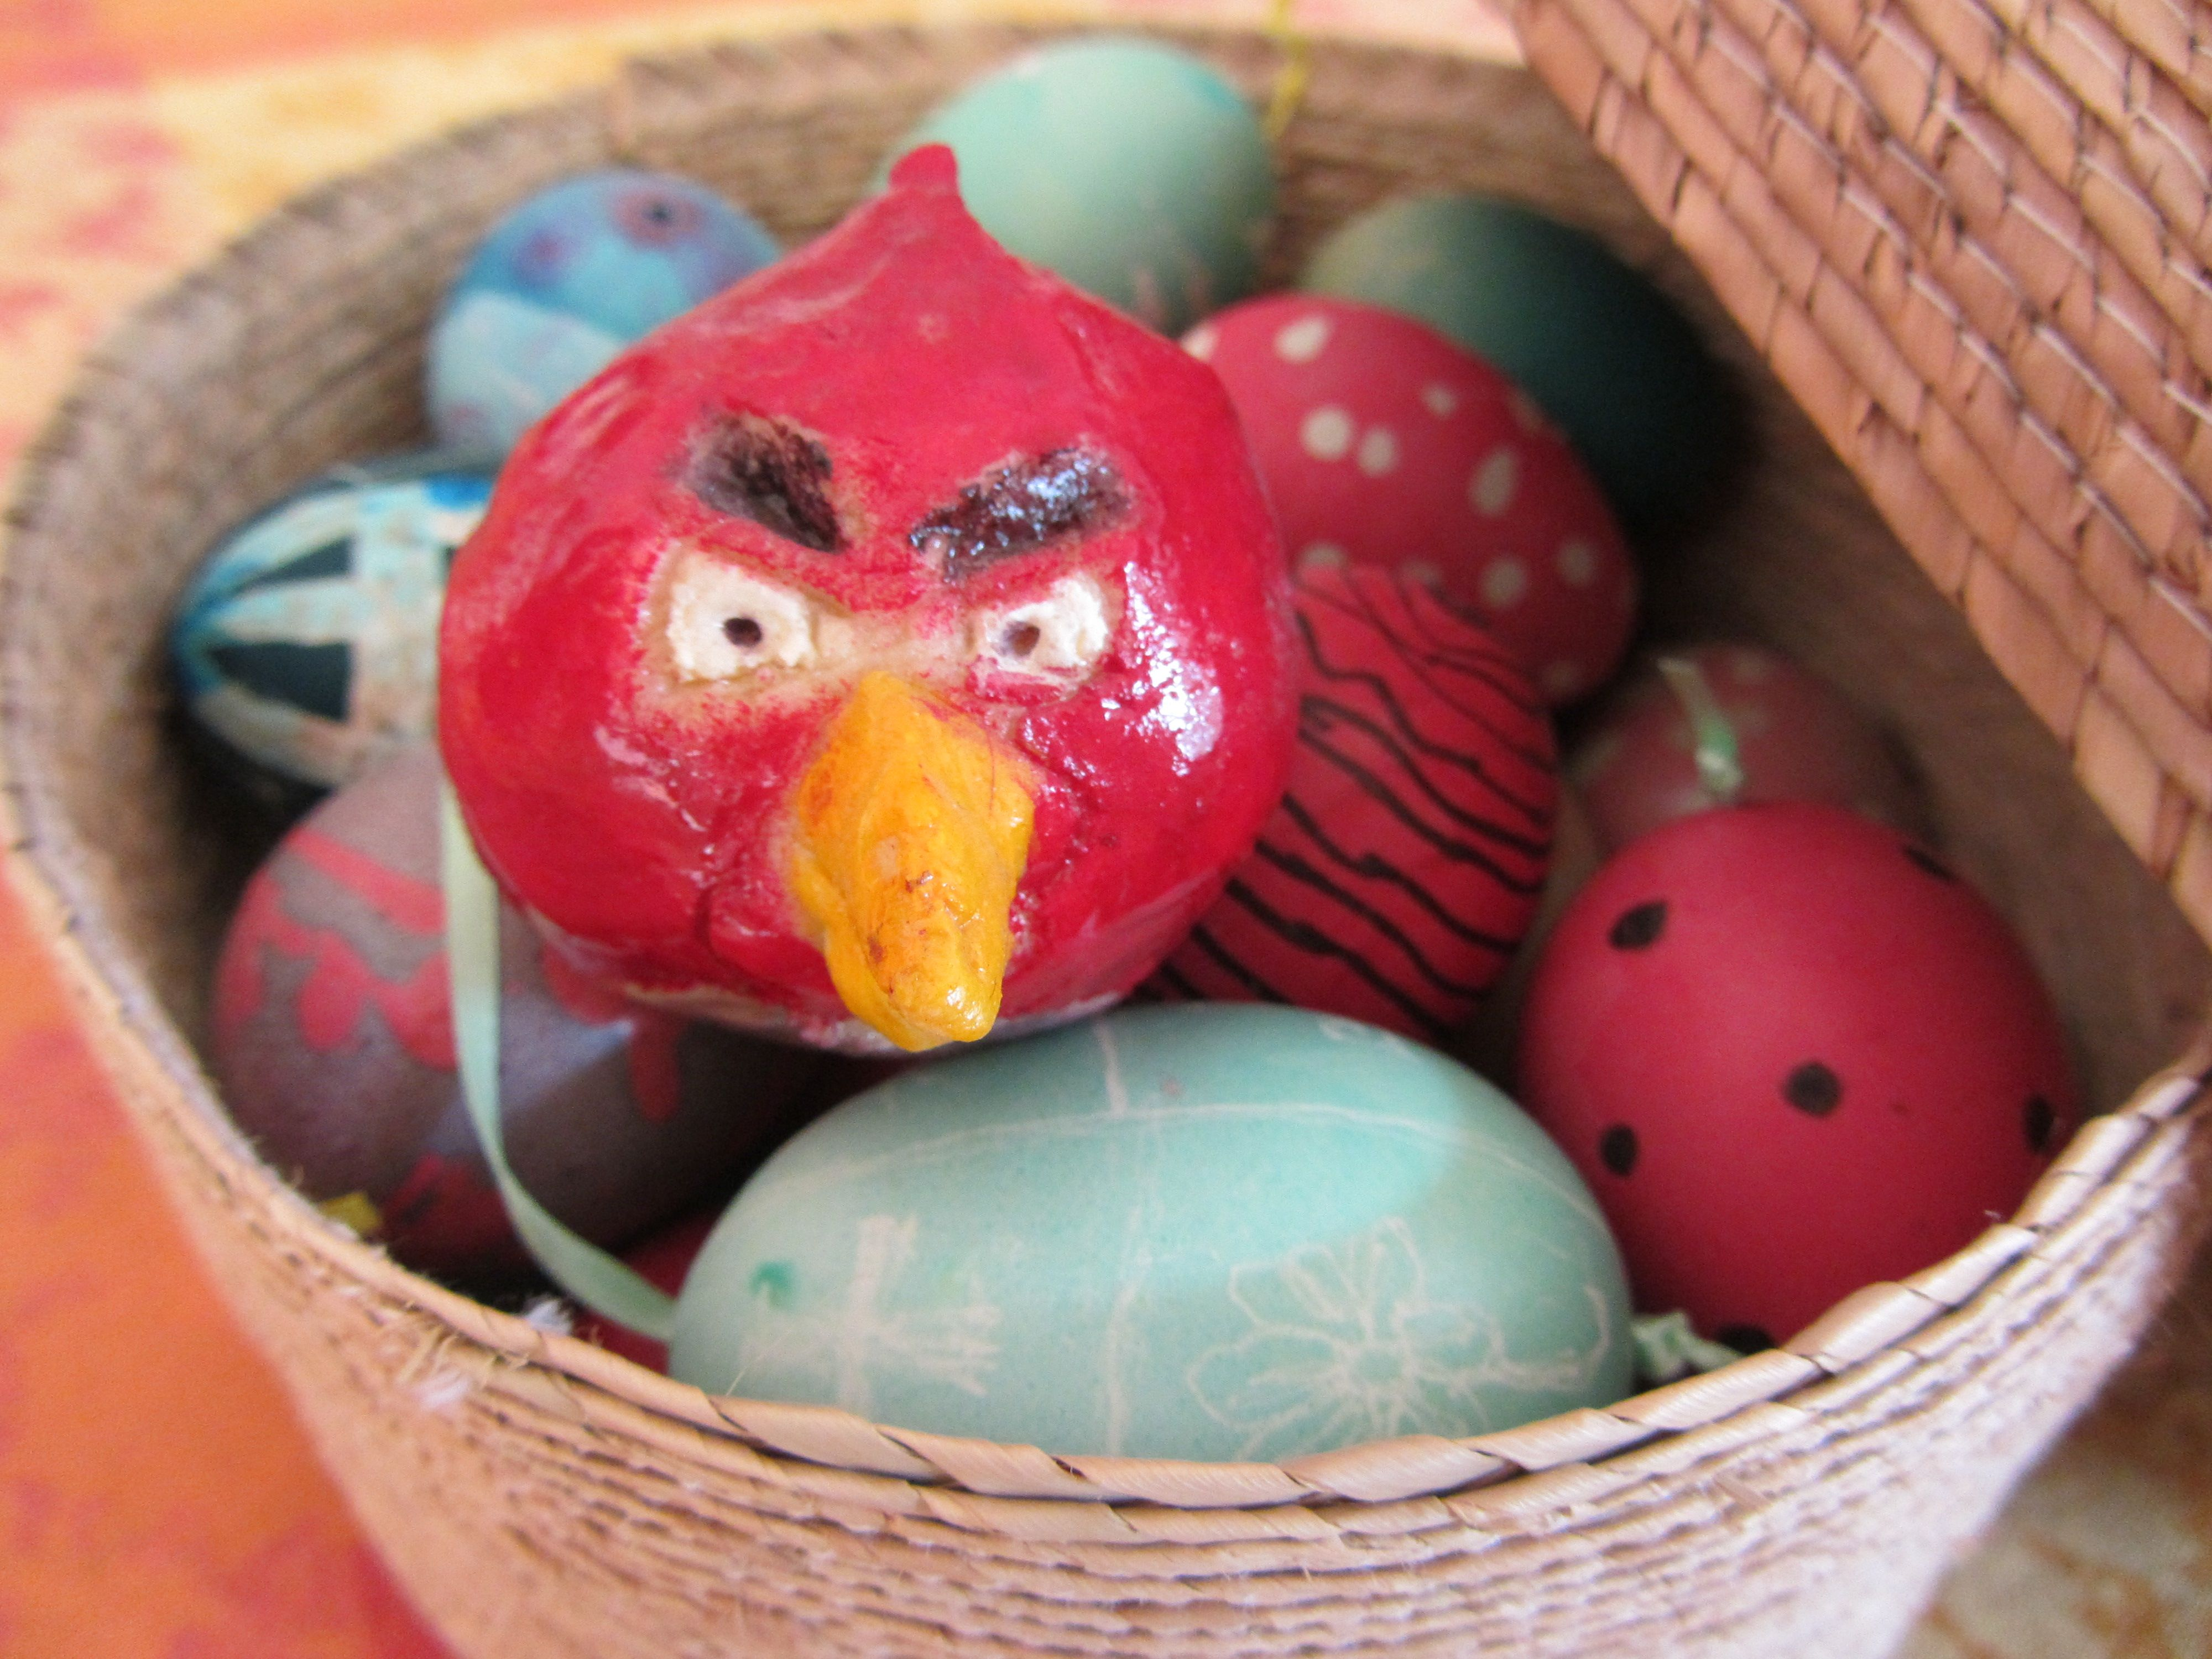 image of an angry bird model plus Easter eggs